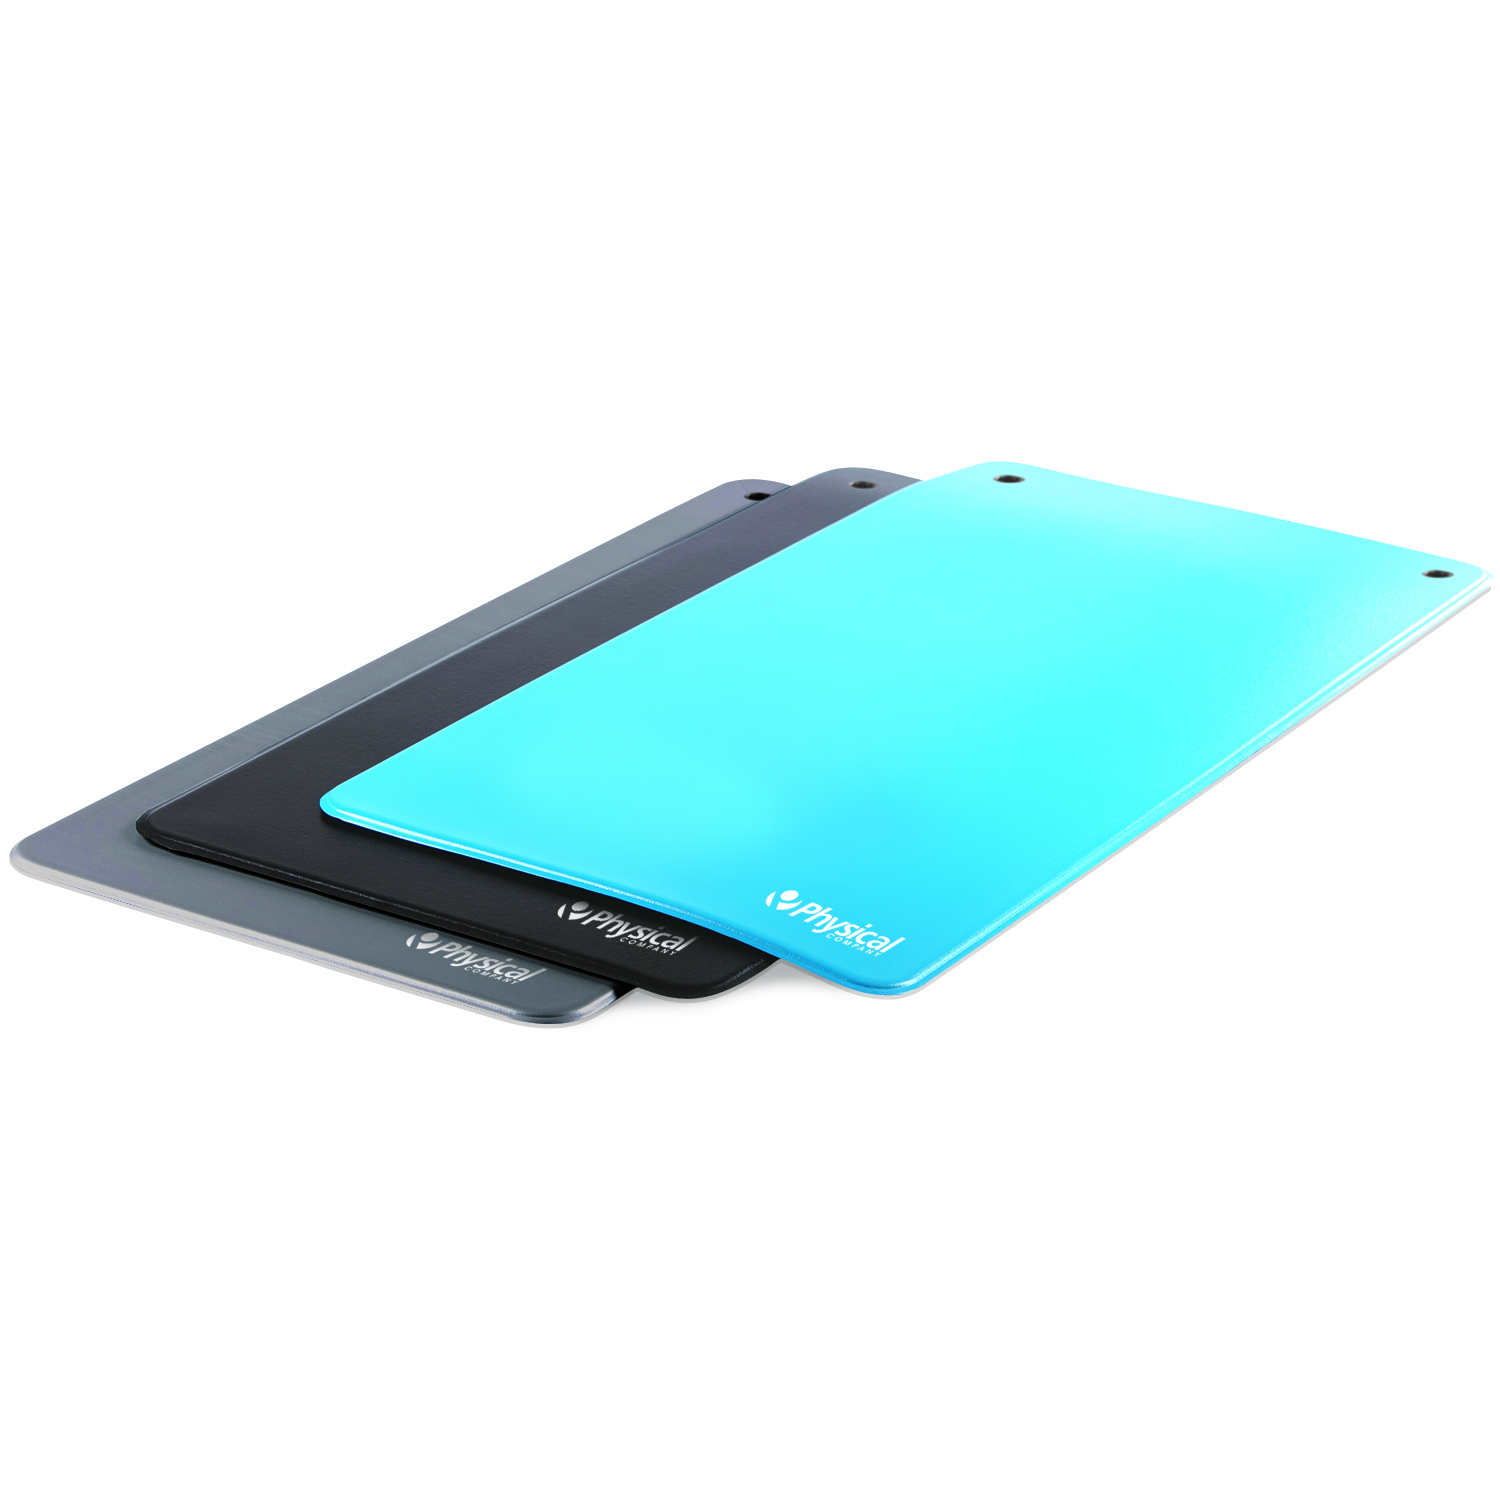 9.5mm Vinyl Exercise Mat - Blue (With Eyelets)